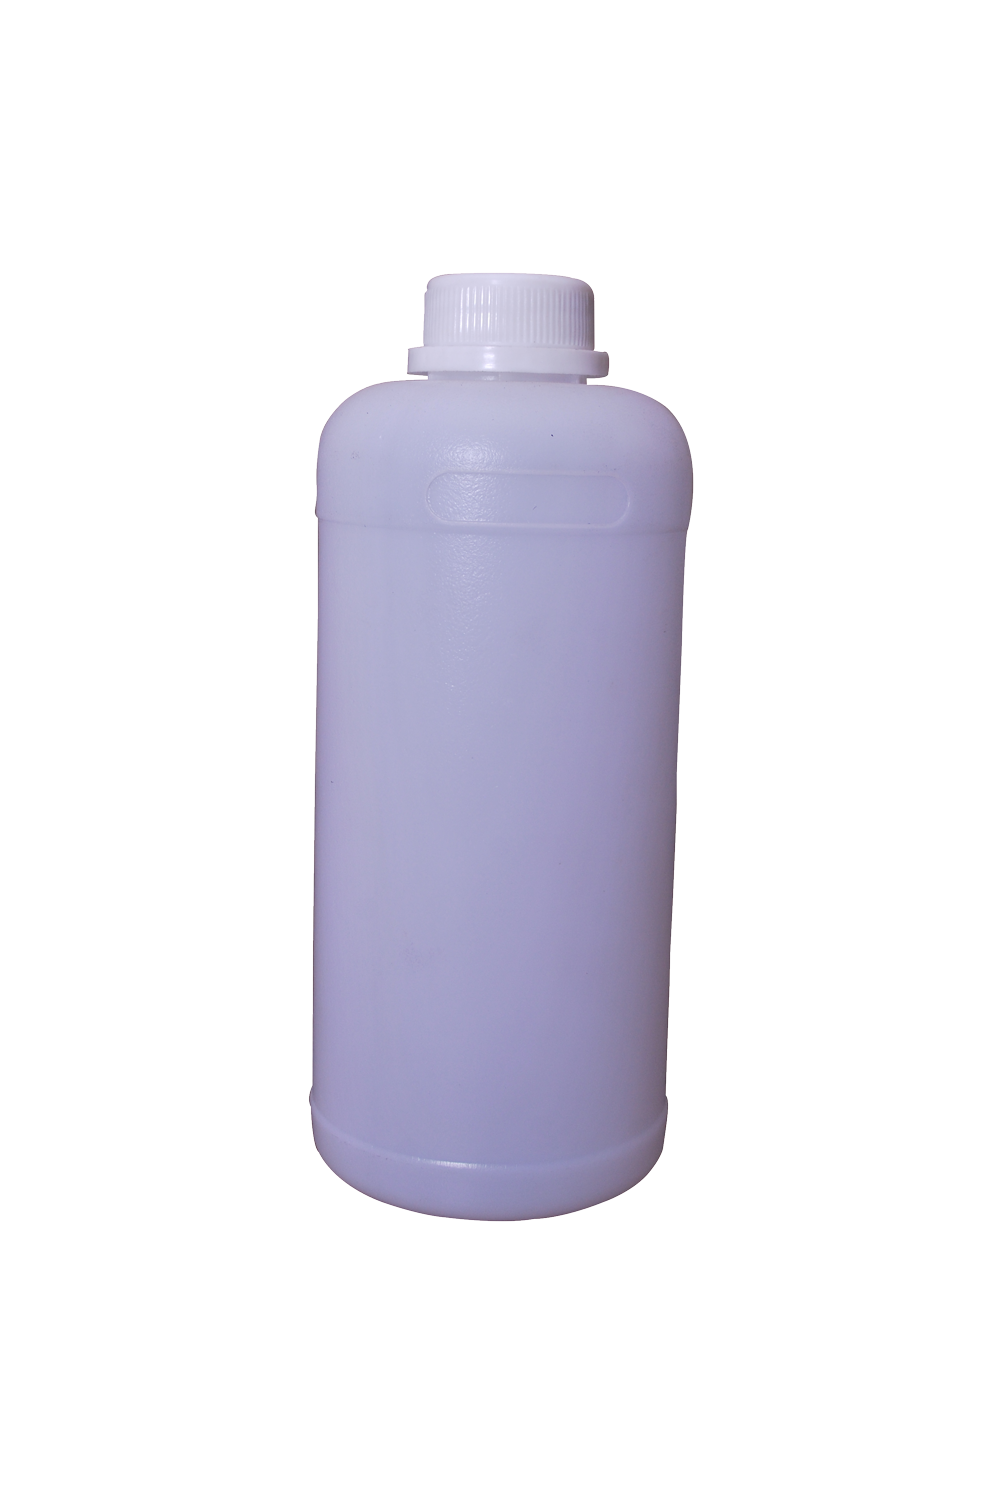 Chemical Bottle Manufacturer in Ahmedabad